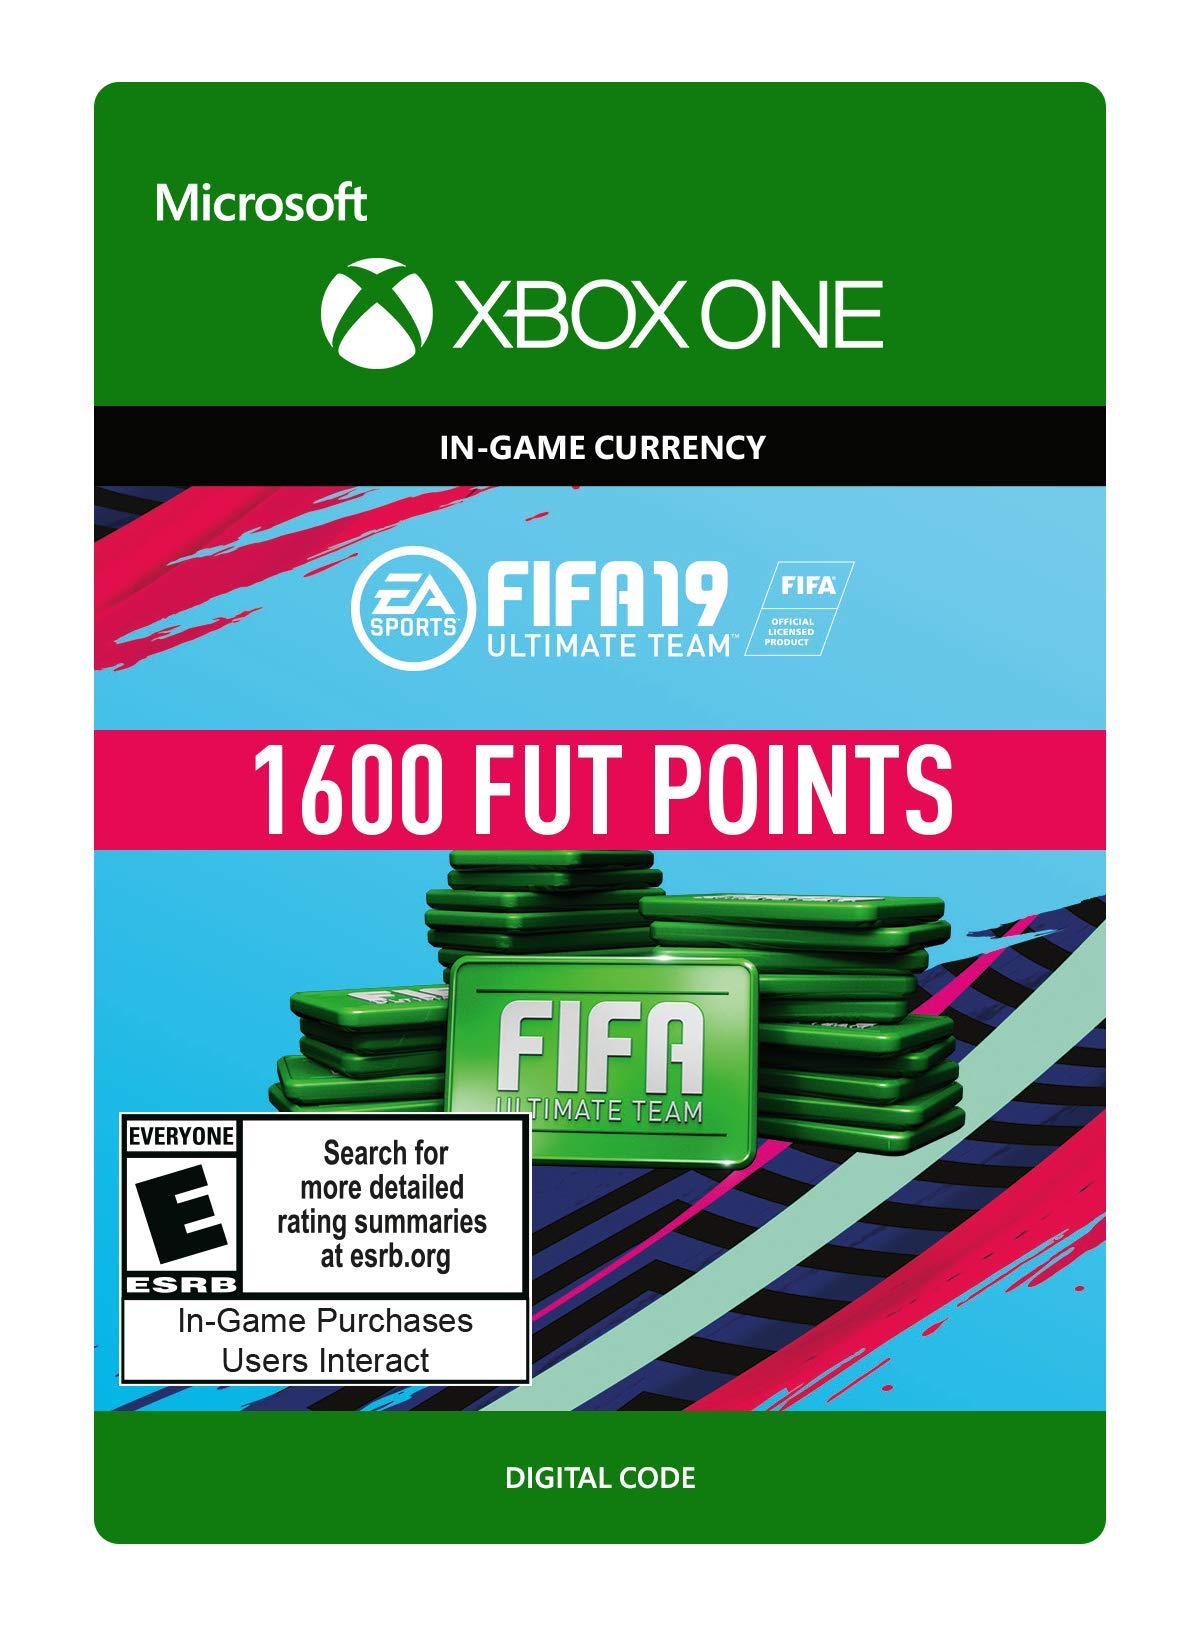 FIFA 19: ULTIMATE TEAM FIFA POINTS 1600 - Xbox One [Digital Code] by Electronic Arts